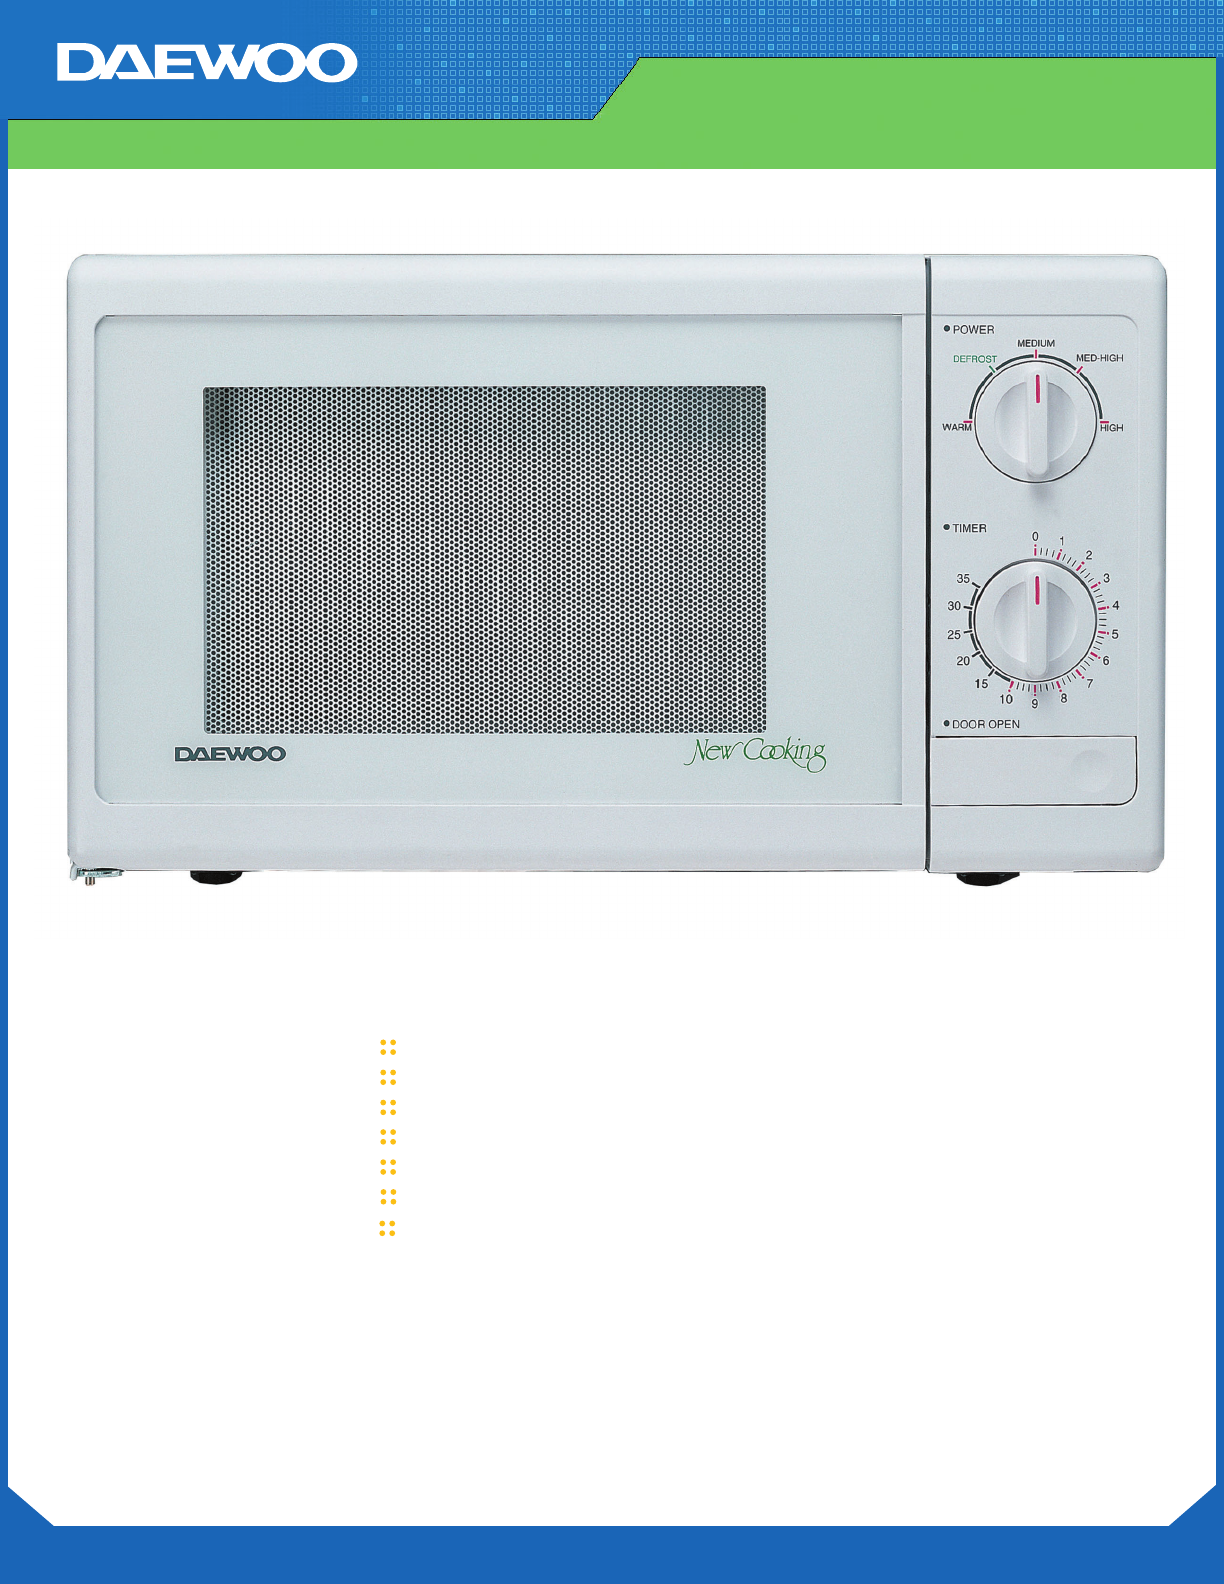 Daewoo Microwave Oven KOR-6115 User Guide | ManualsOnline.com